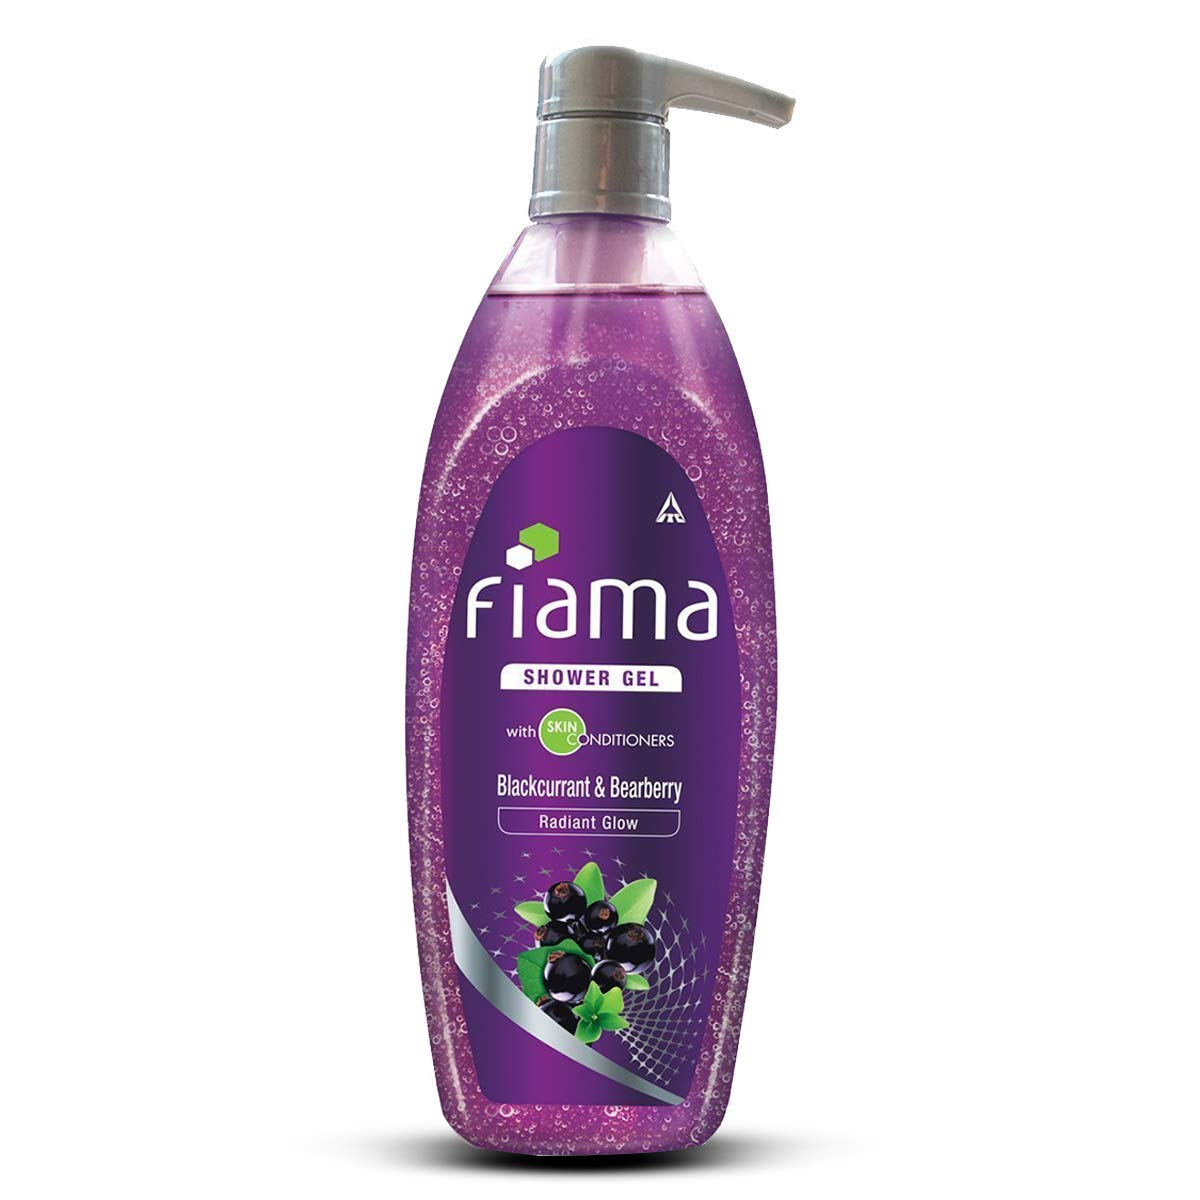 Fiama Blackcurrant And Bearberry Shower Gel